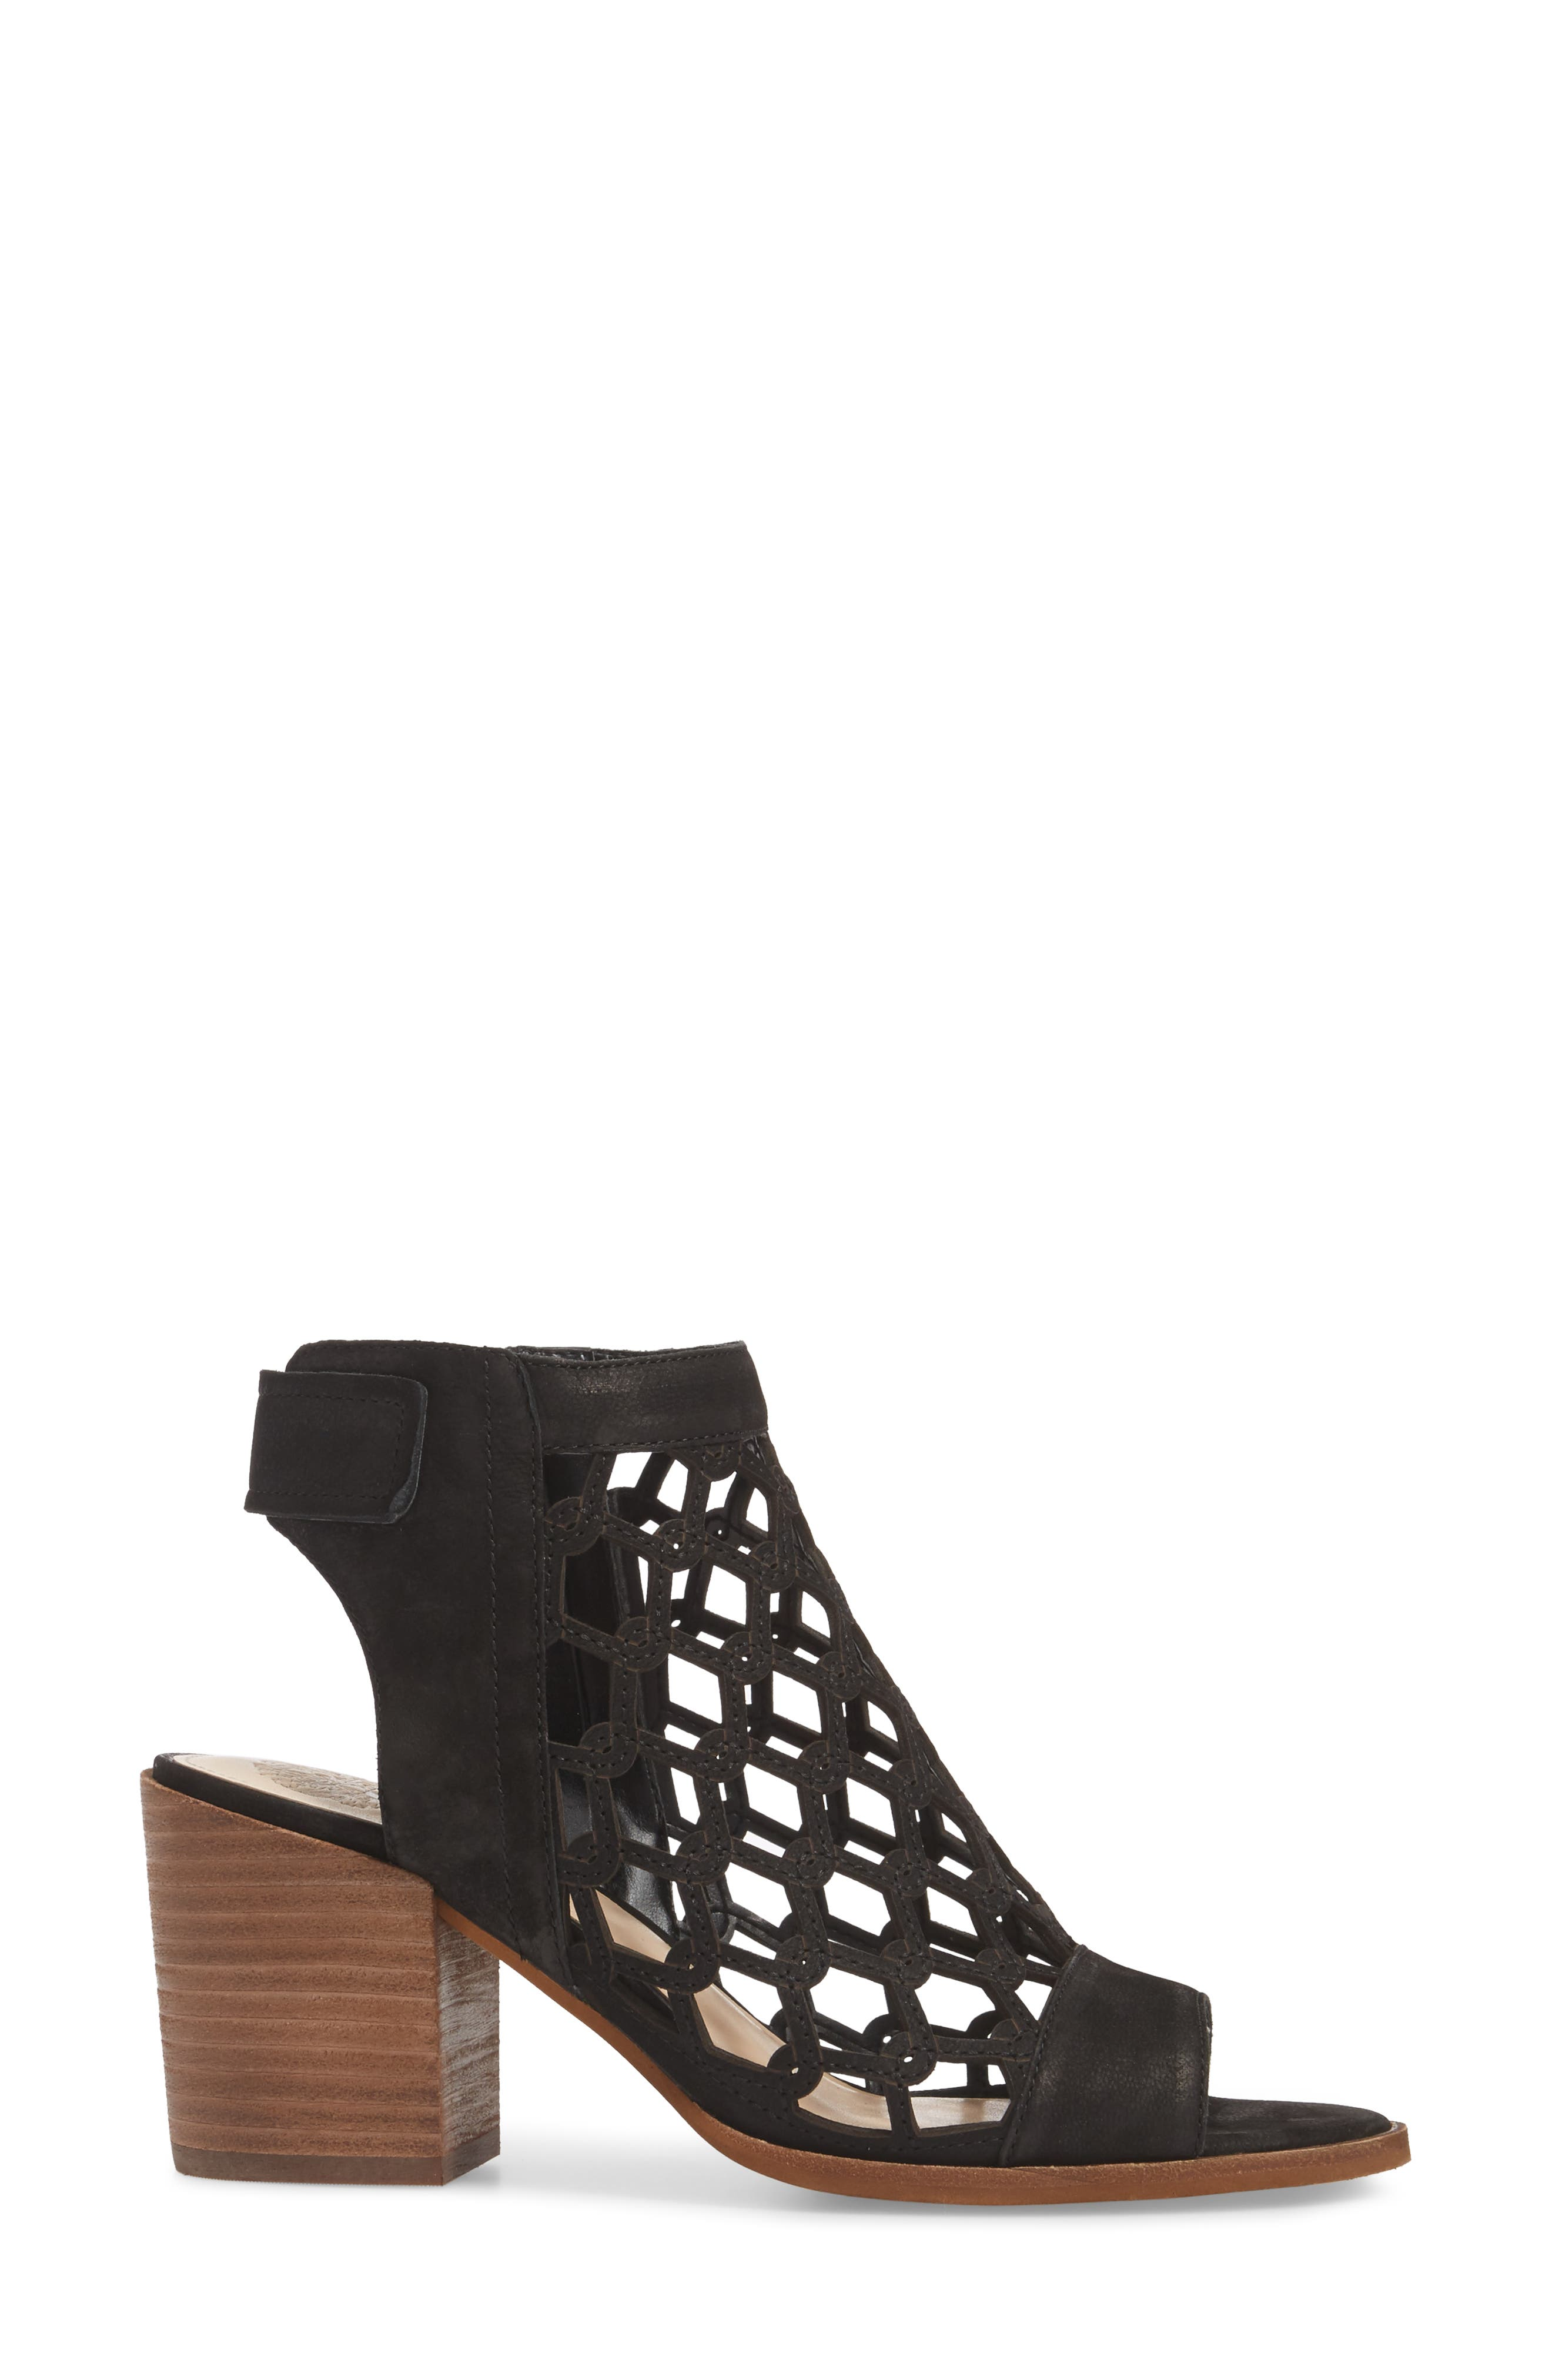 VINCE CAMUTO, Lanaira Sandal, Alternate thumbnail 3, color, BLACK LEATHER